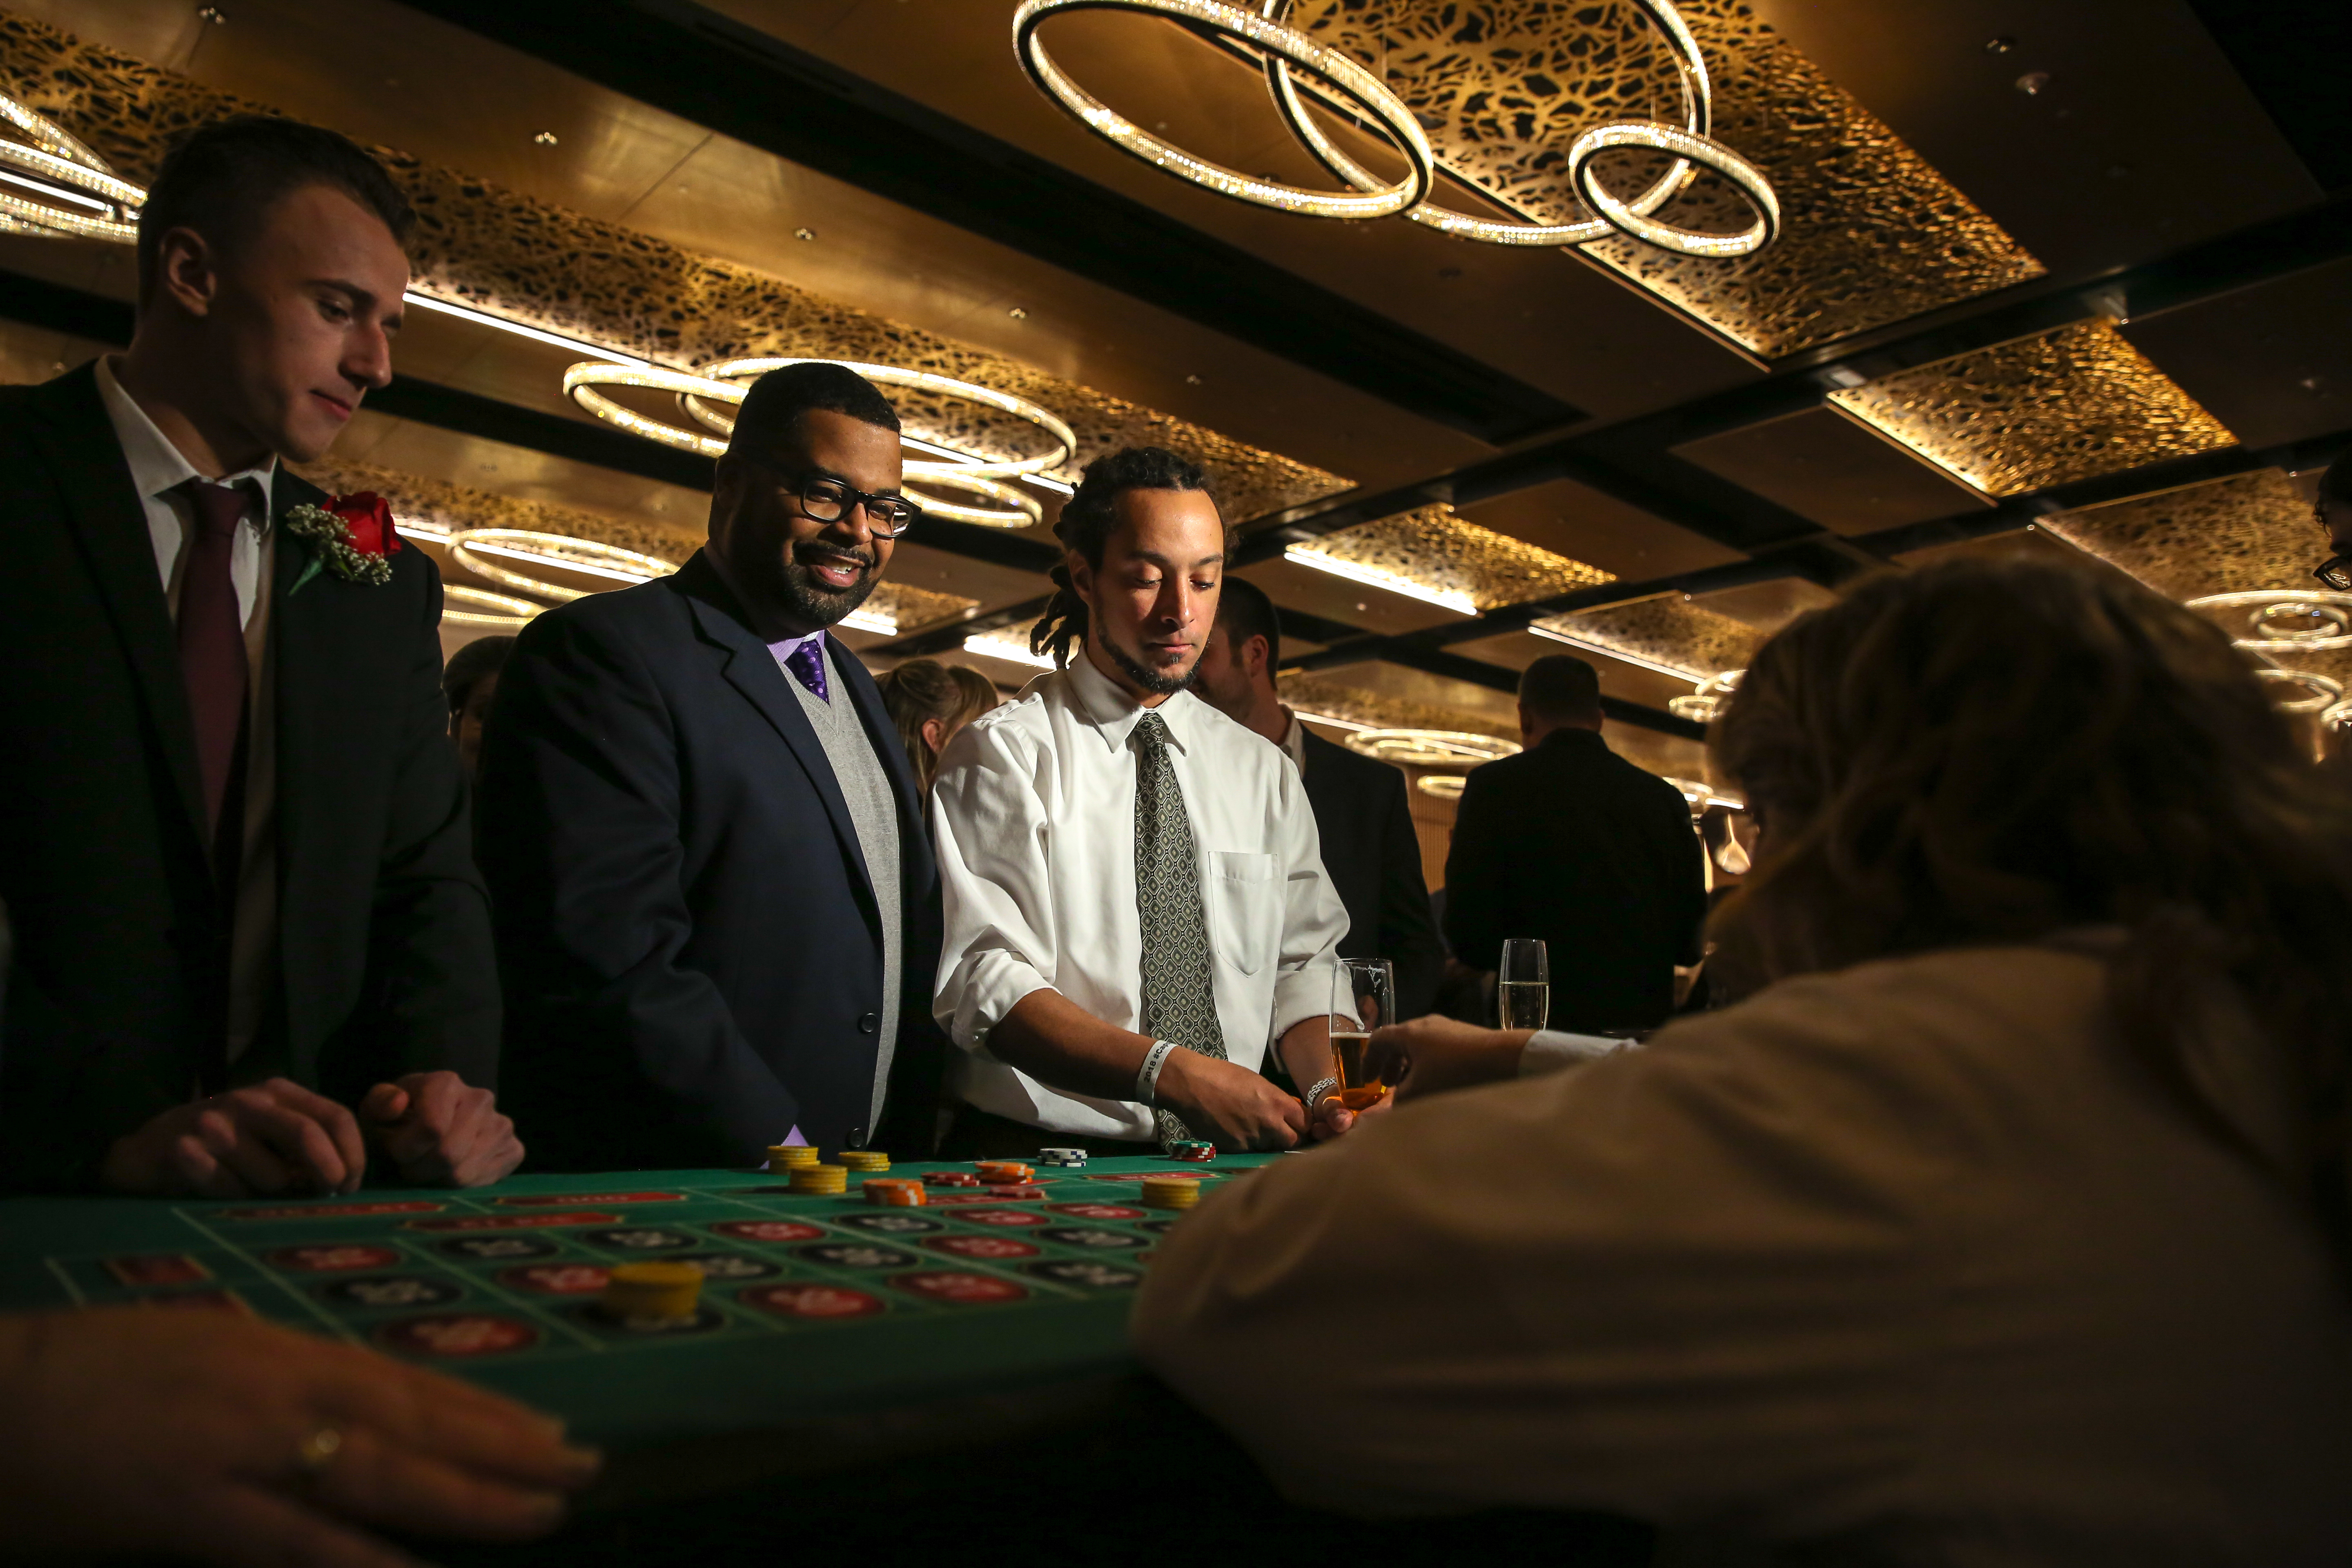 Players from the Washington Capitals mingled with fans at their annual Casino Night, which was held at MGM National Harbor, on January 4. The proceeds of the evening{ } went to charity and gave fans a chance to get up close and personal with their favorite hockey players over the poker table. (Amanda Andrade-Rhoades/DC Refined)